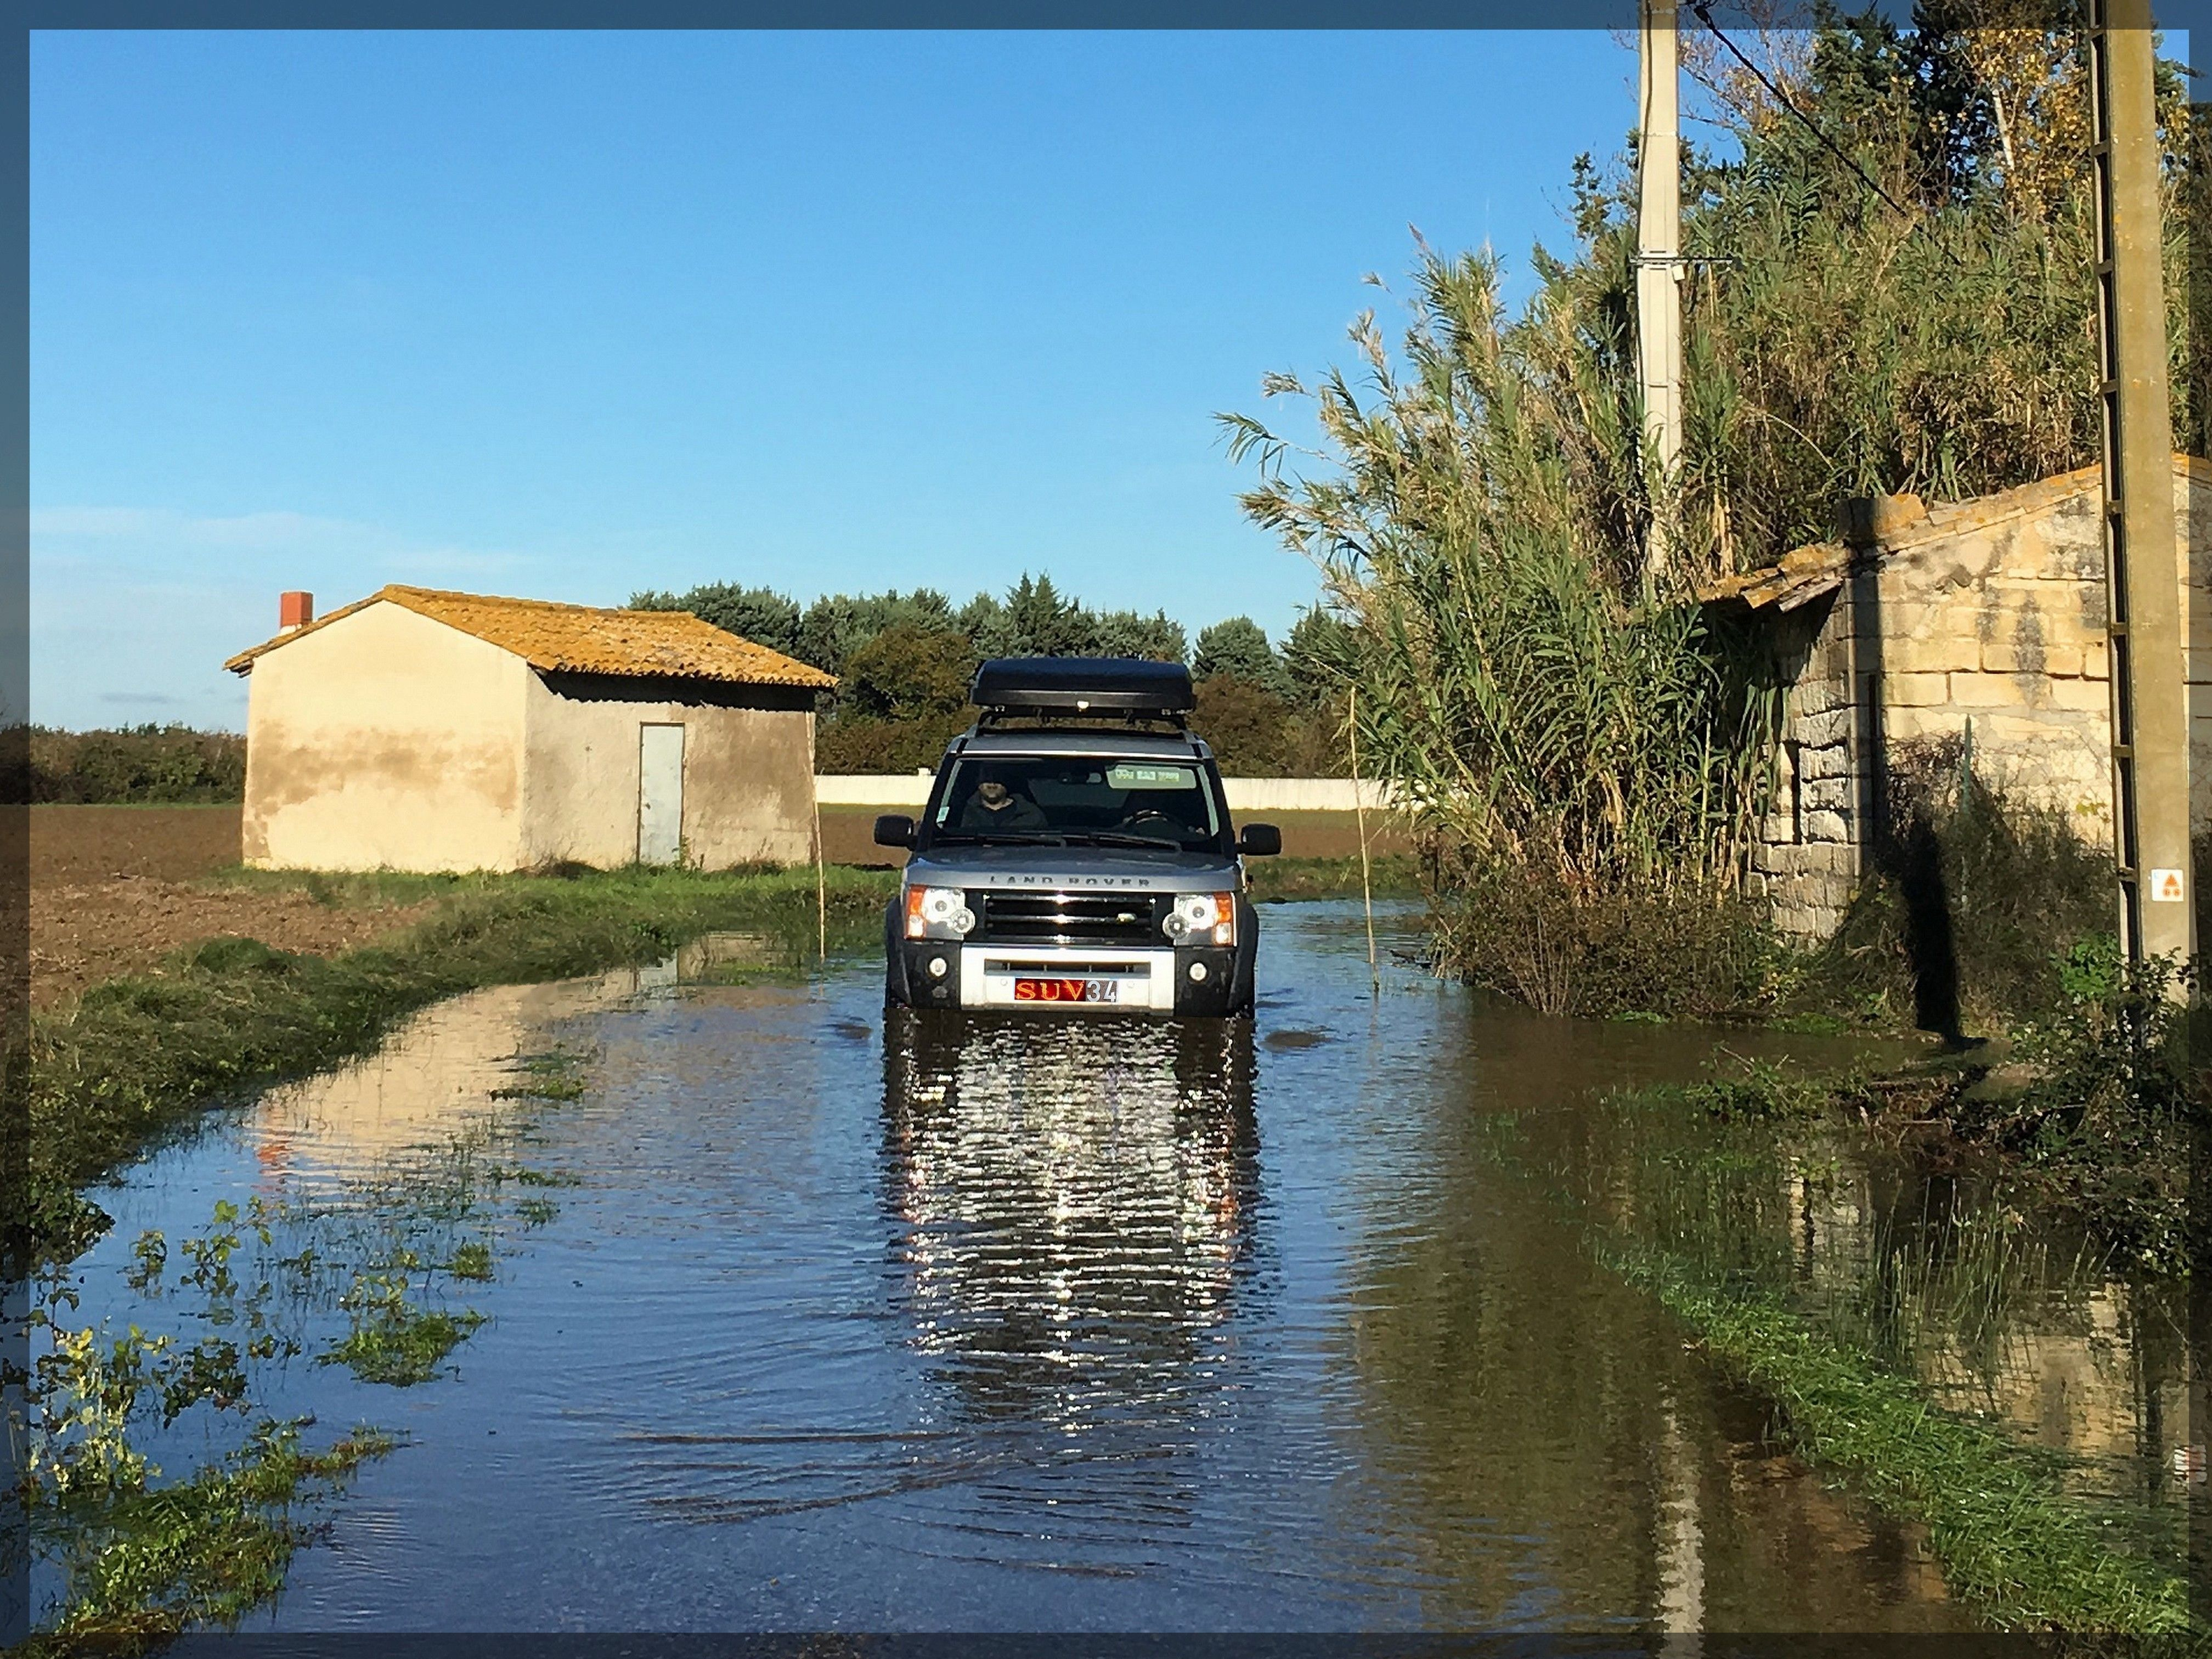 4x4 Land Rover Disco 3 in water. gué, inondations Tente